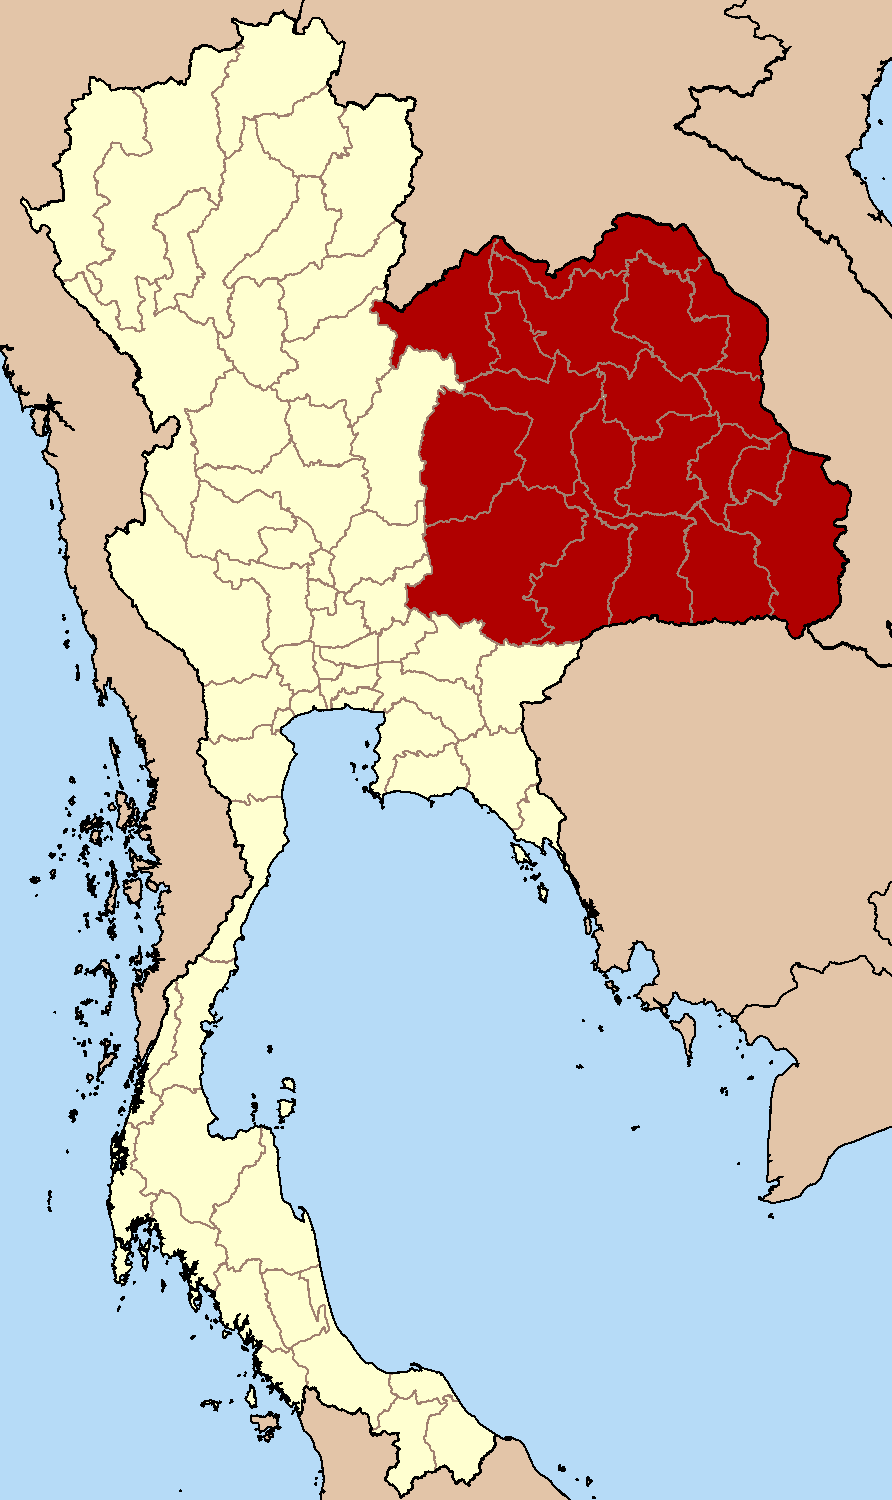 http://upload.wikimedia.org/wikipedia/commons/e/e1/Thailand_Isan.png